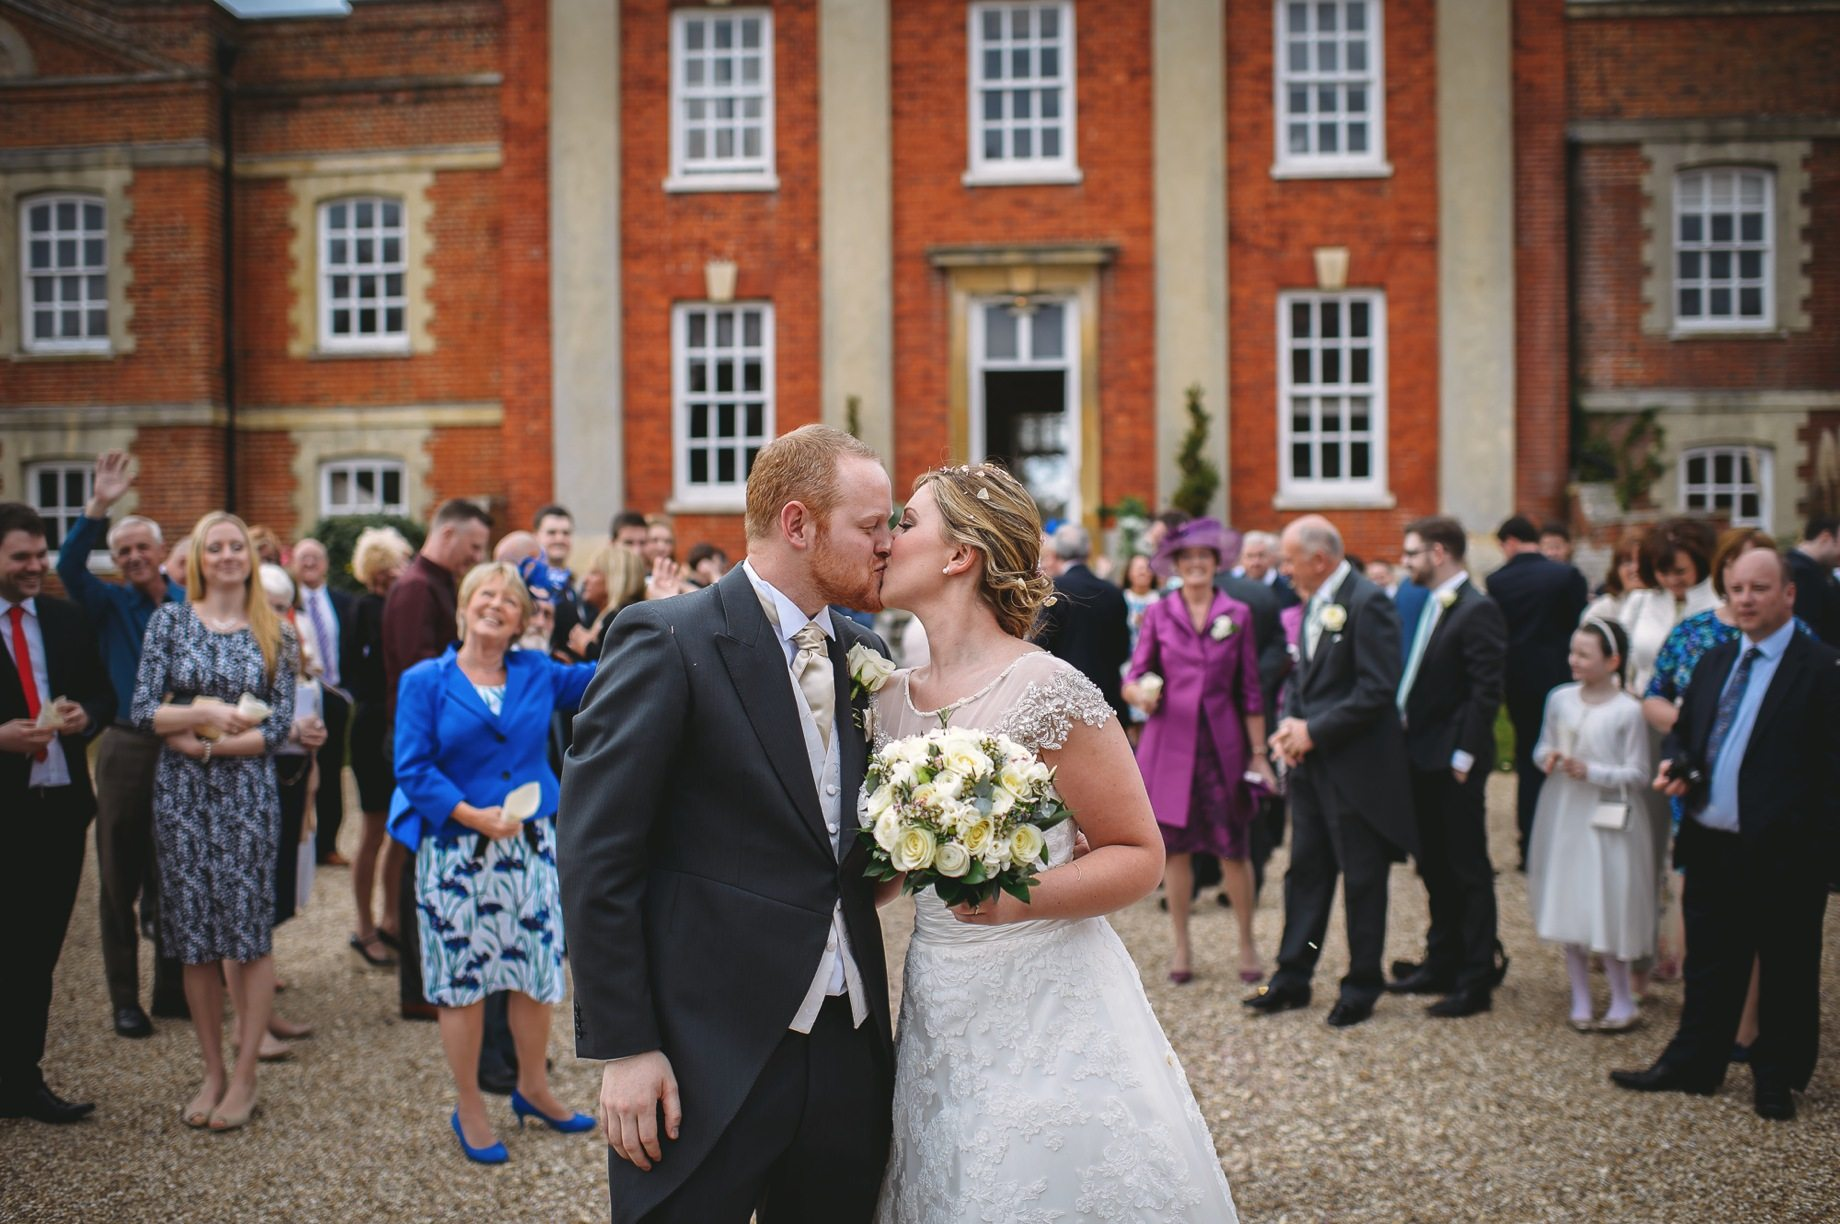 24Best Wedding Photography Guy Collier